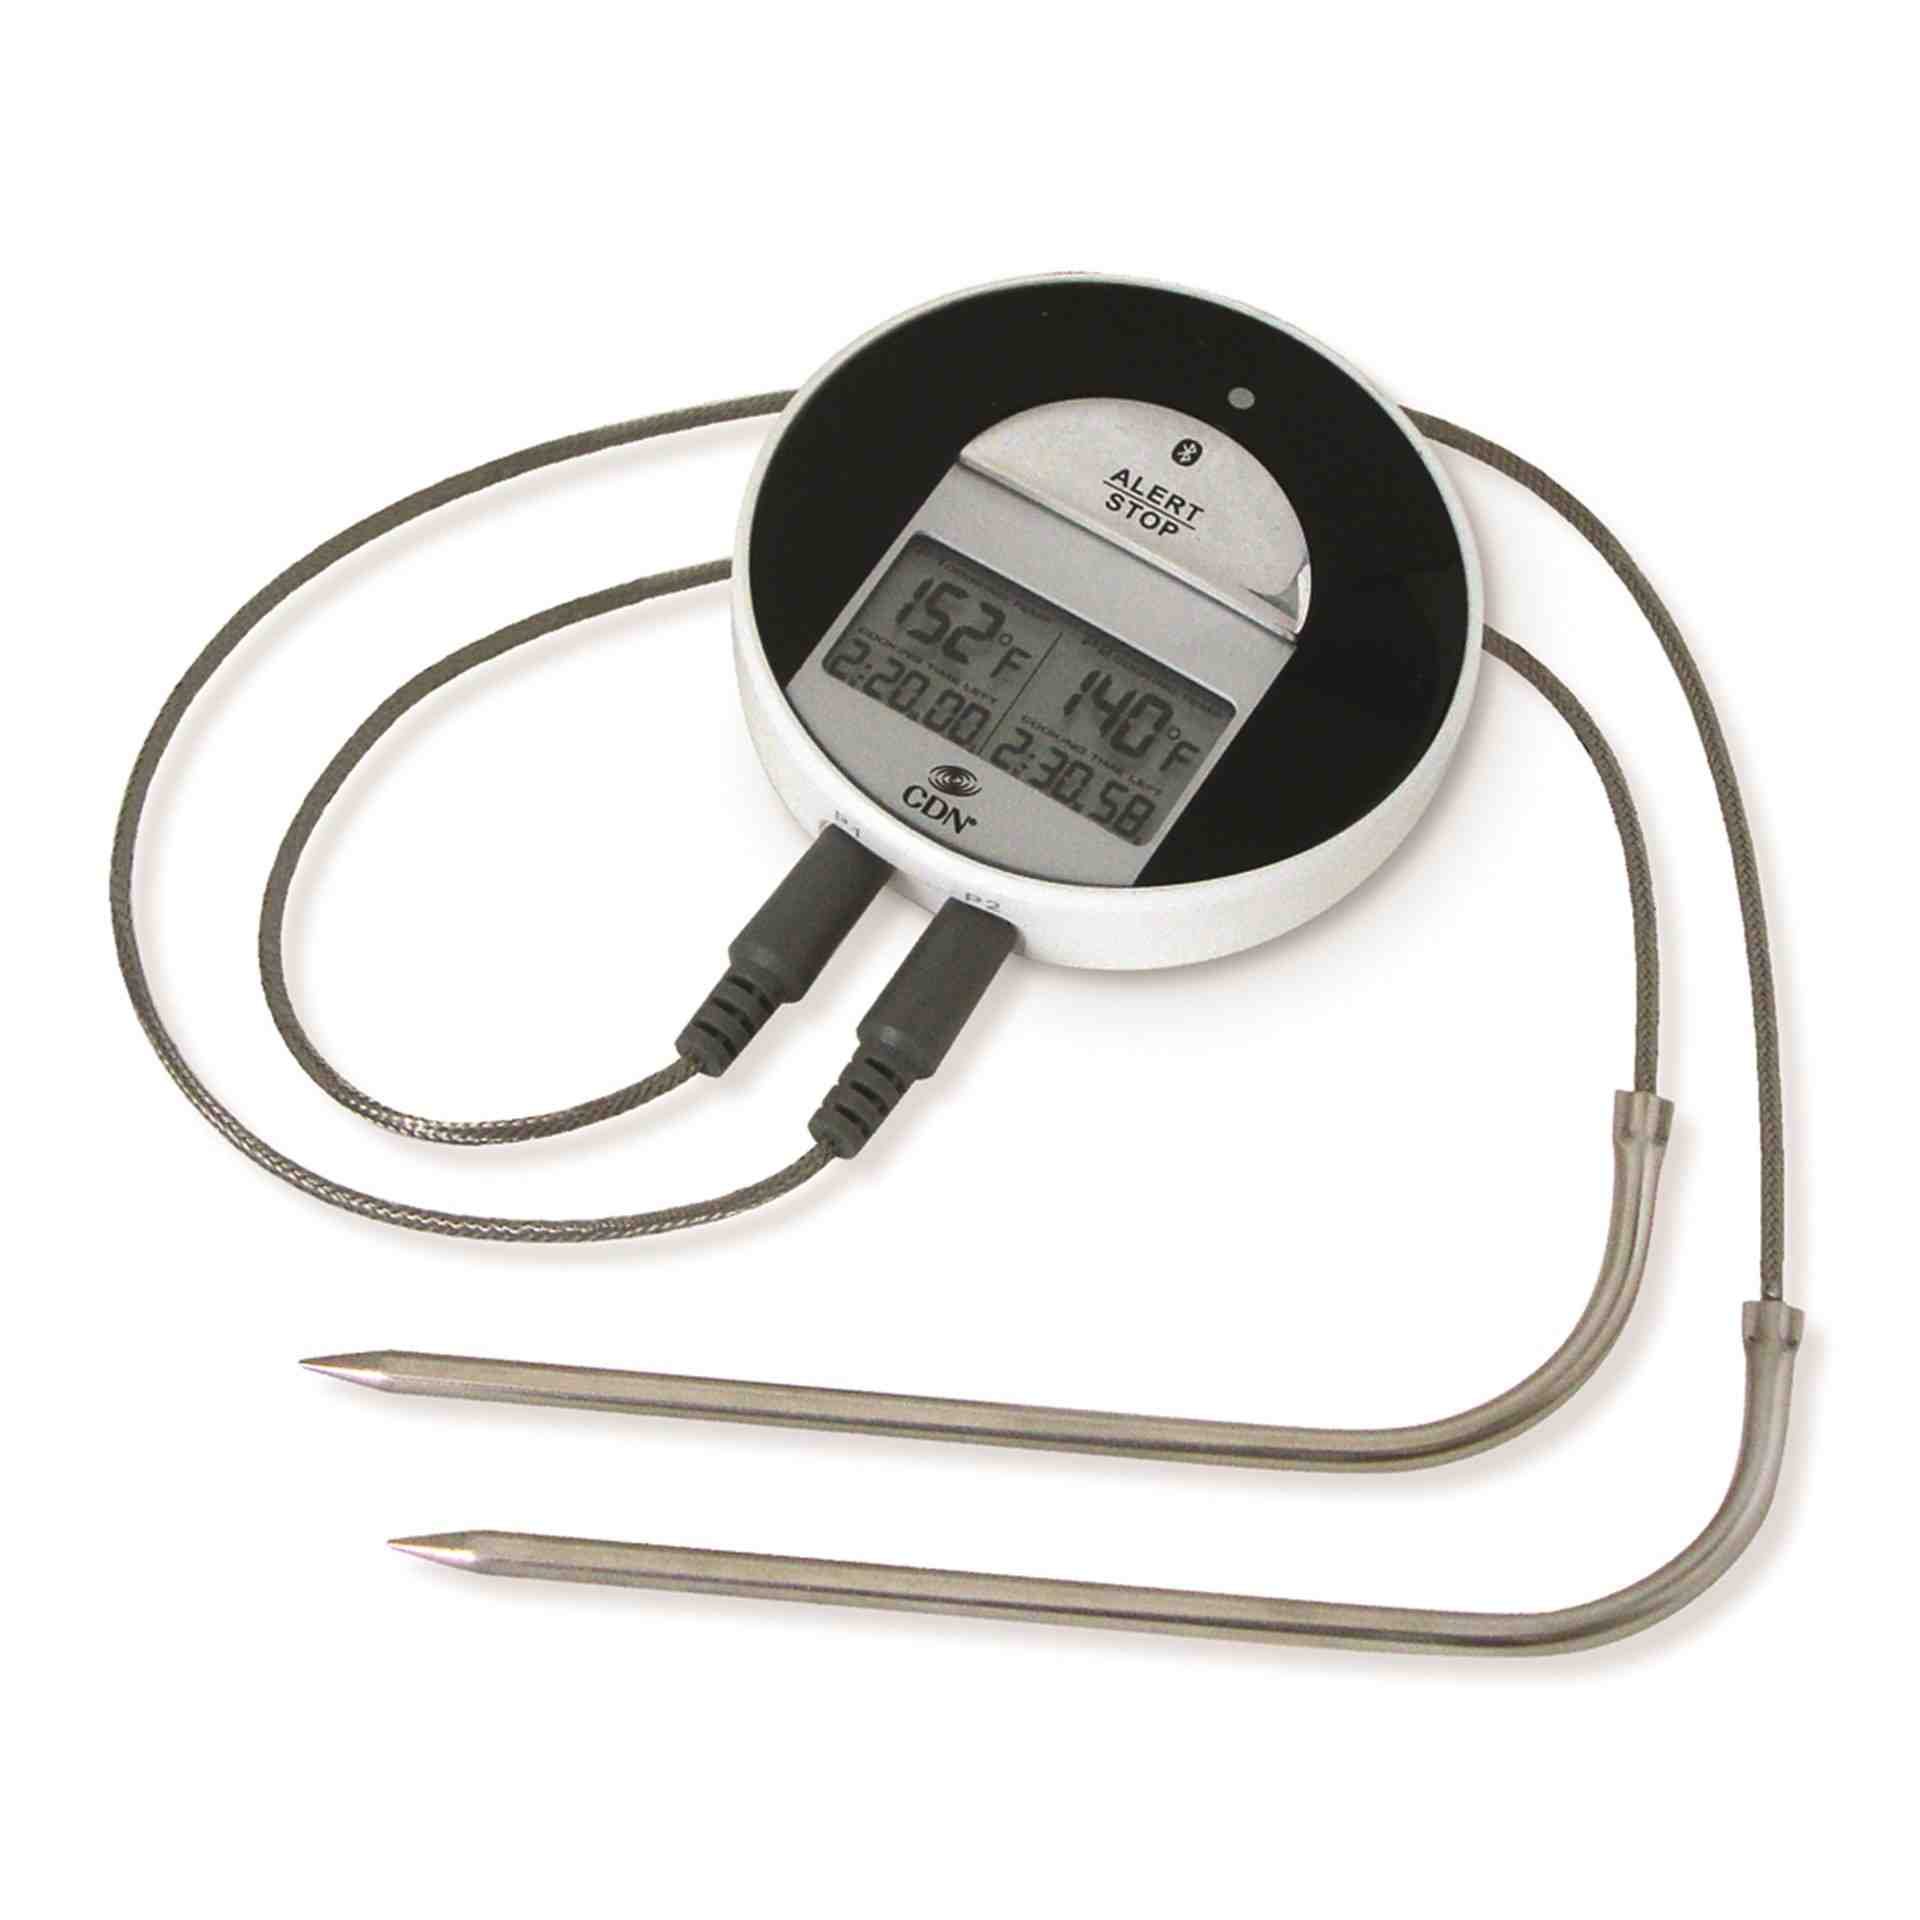 CDN Bluetooth Dual Probe Thermometer & Timer